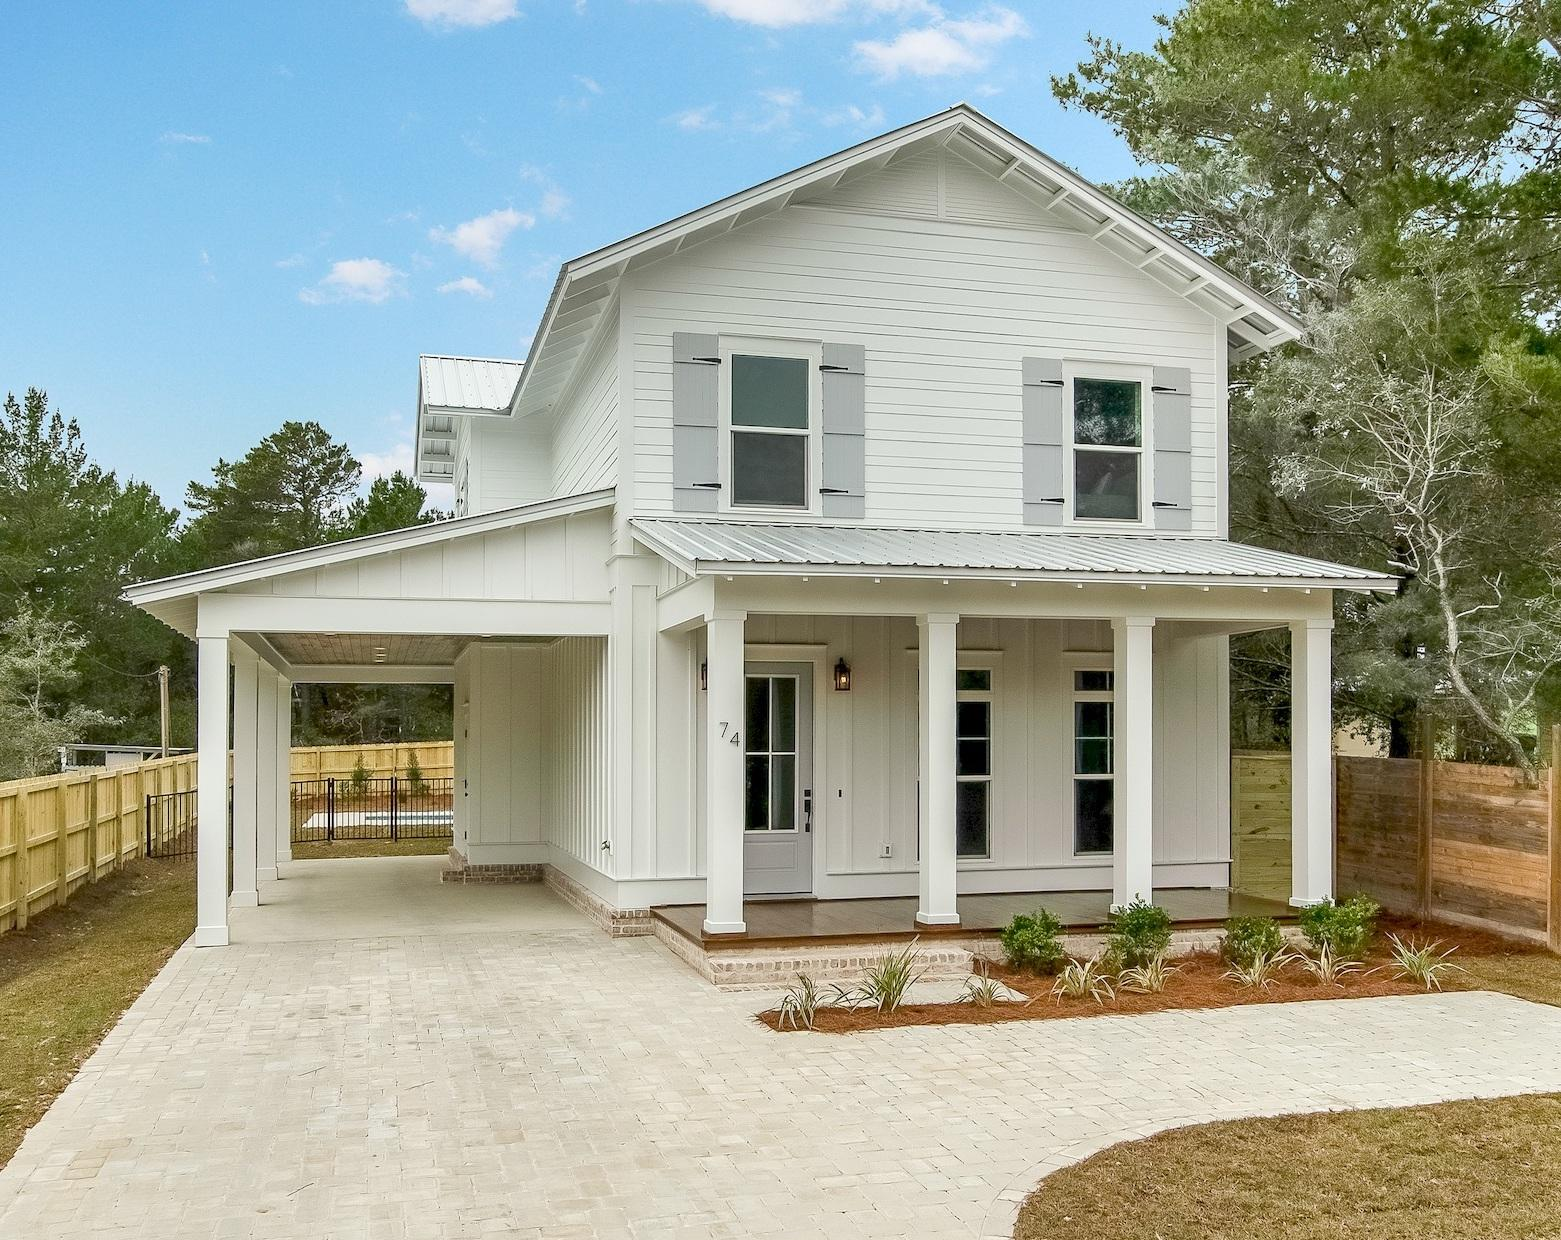 Custom built in 2019, this 5 bedroom 4 1/2 bathroom home with heated pool is in the heart of Seagrov